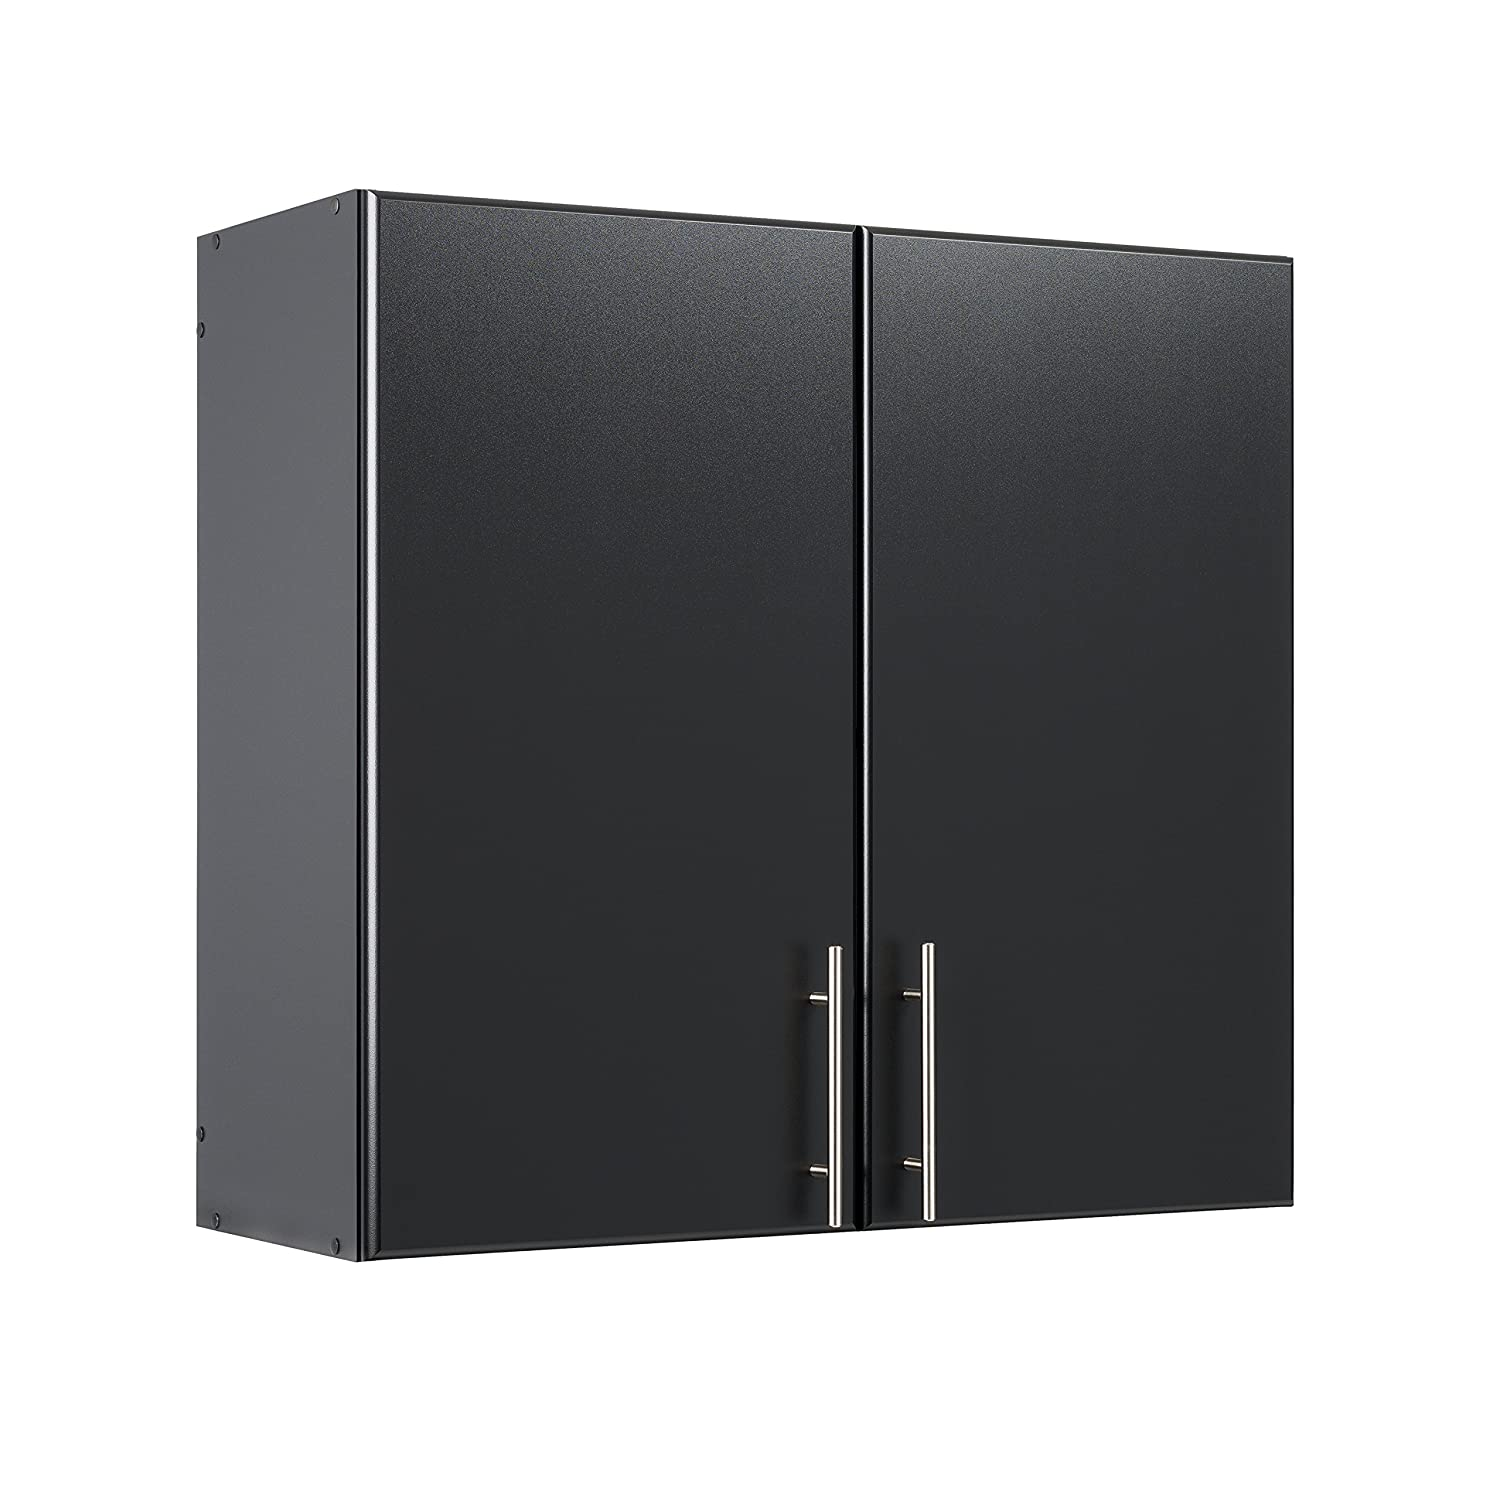 "Prepac BEW-3230 Elite Storage Cabinet 32"" Wall, Black"